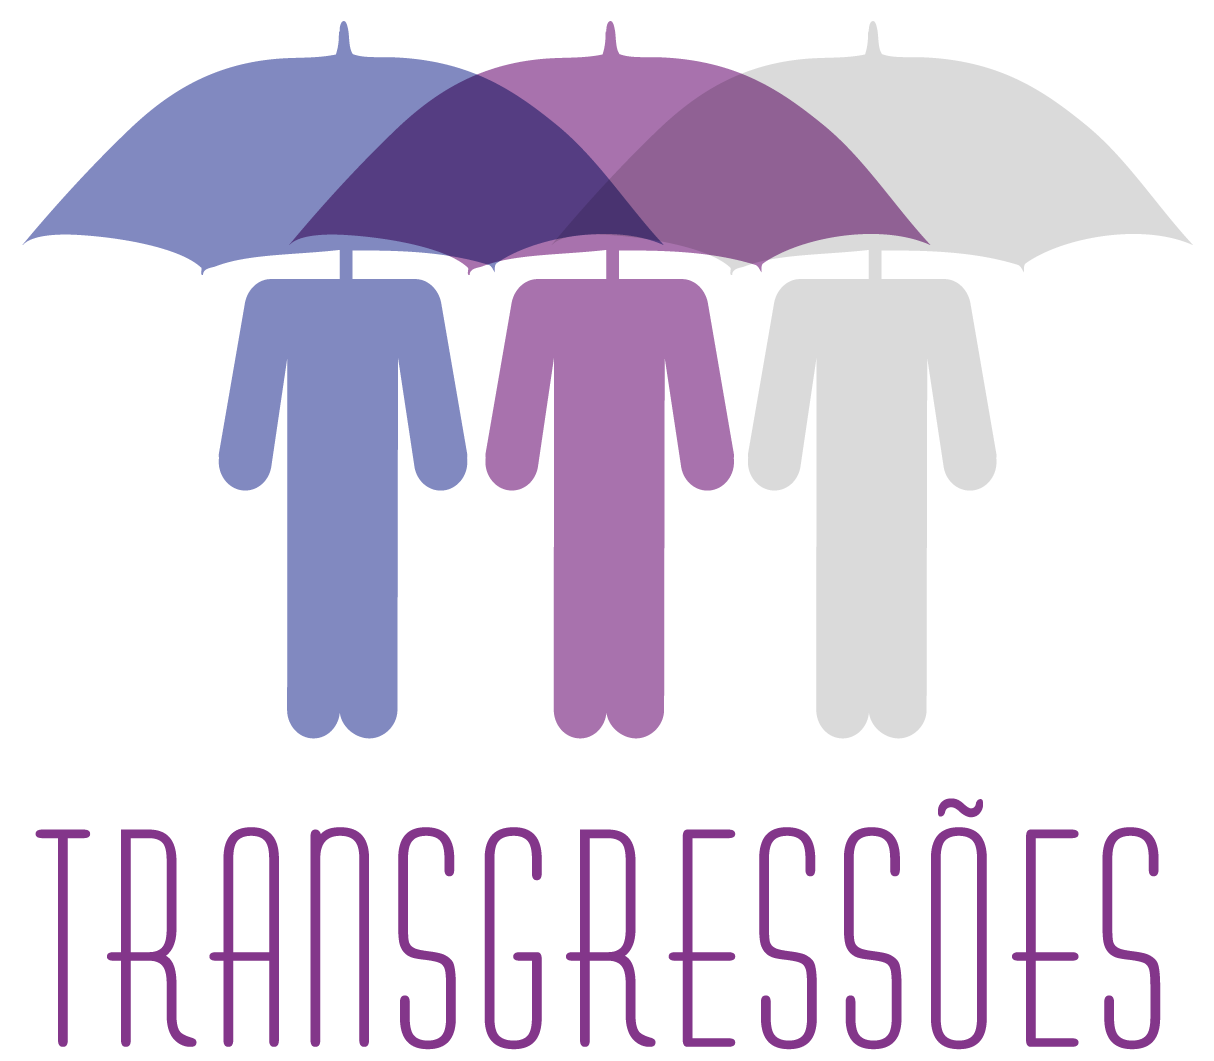 TRANSGRESSOES